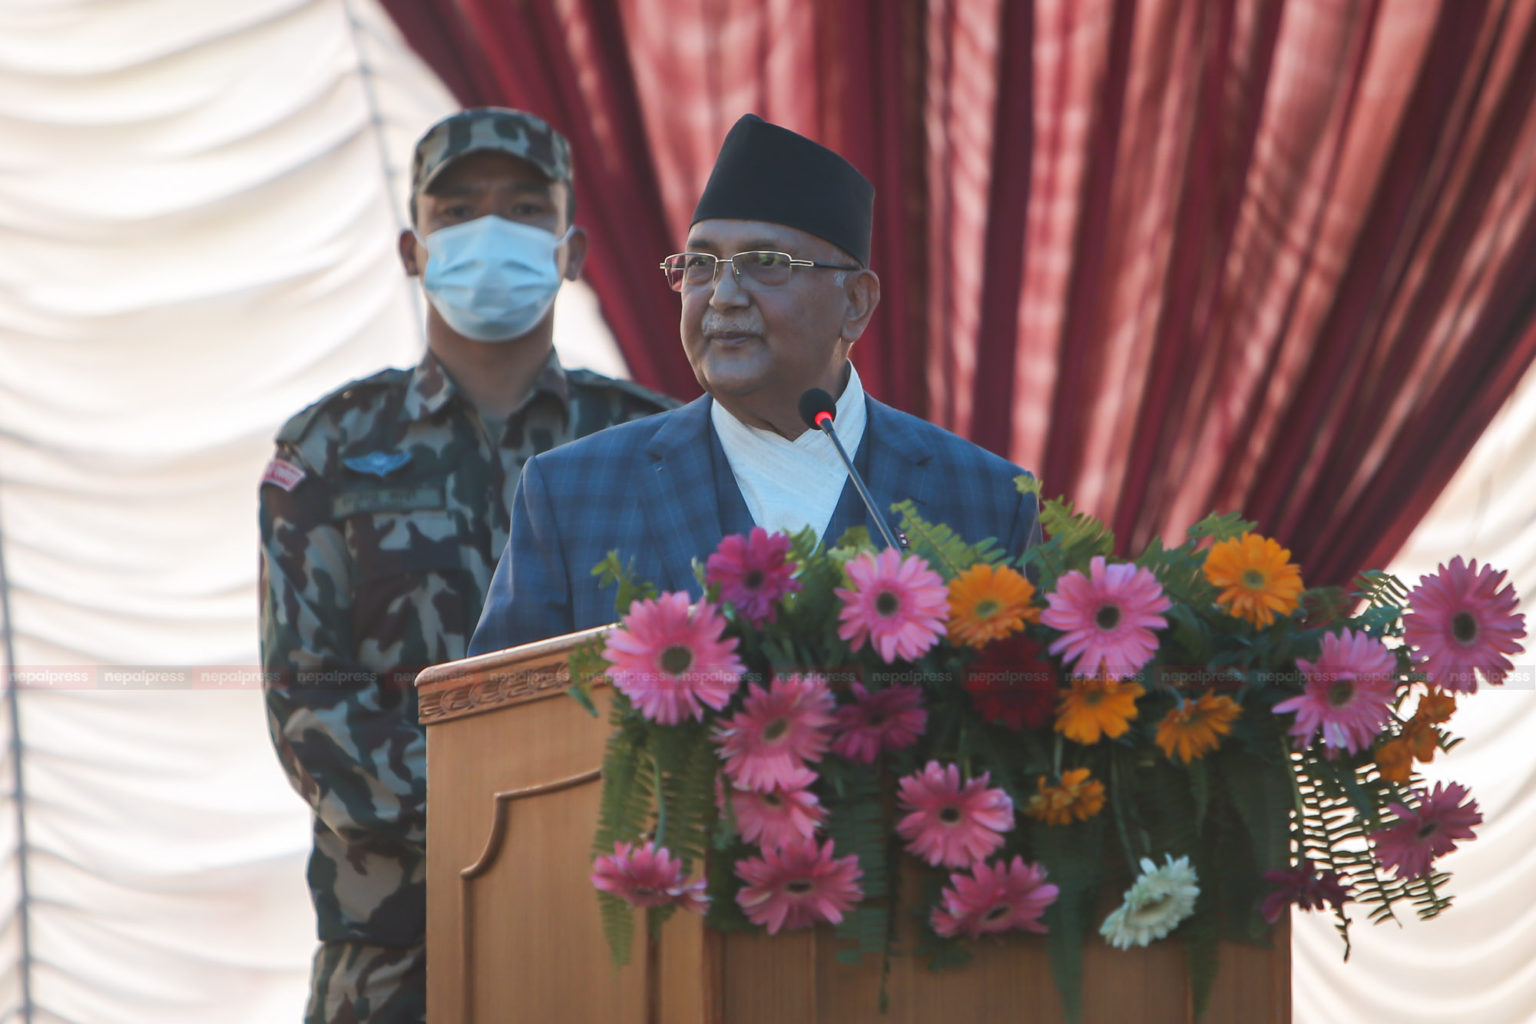 Oli's warning: UML will not run amok, it will be in accordance with law and legislation